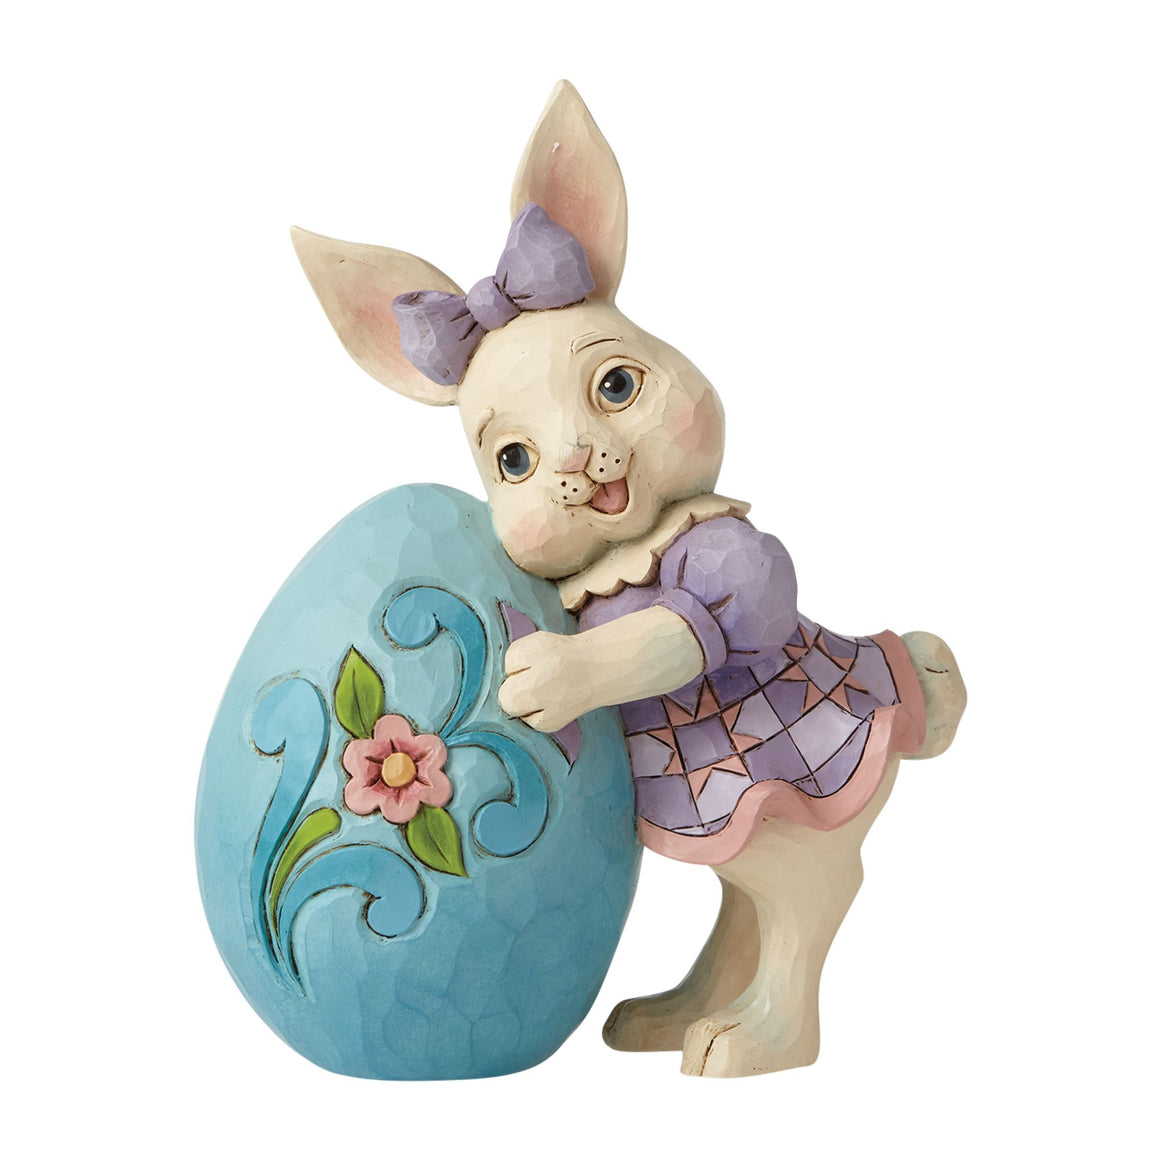 Pint Sized Girl Bunny Leaning on Egg - Heartwood Creek by Jim Shore